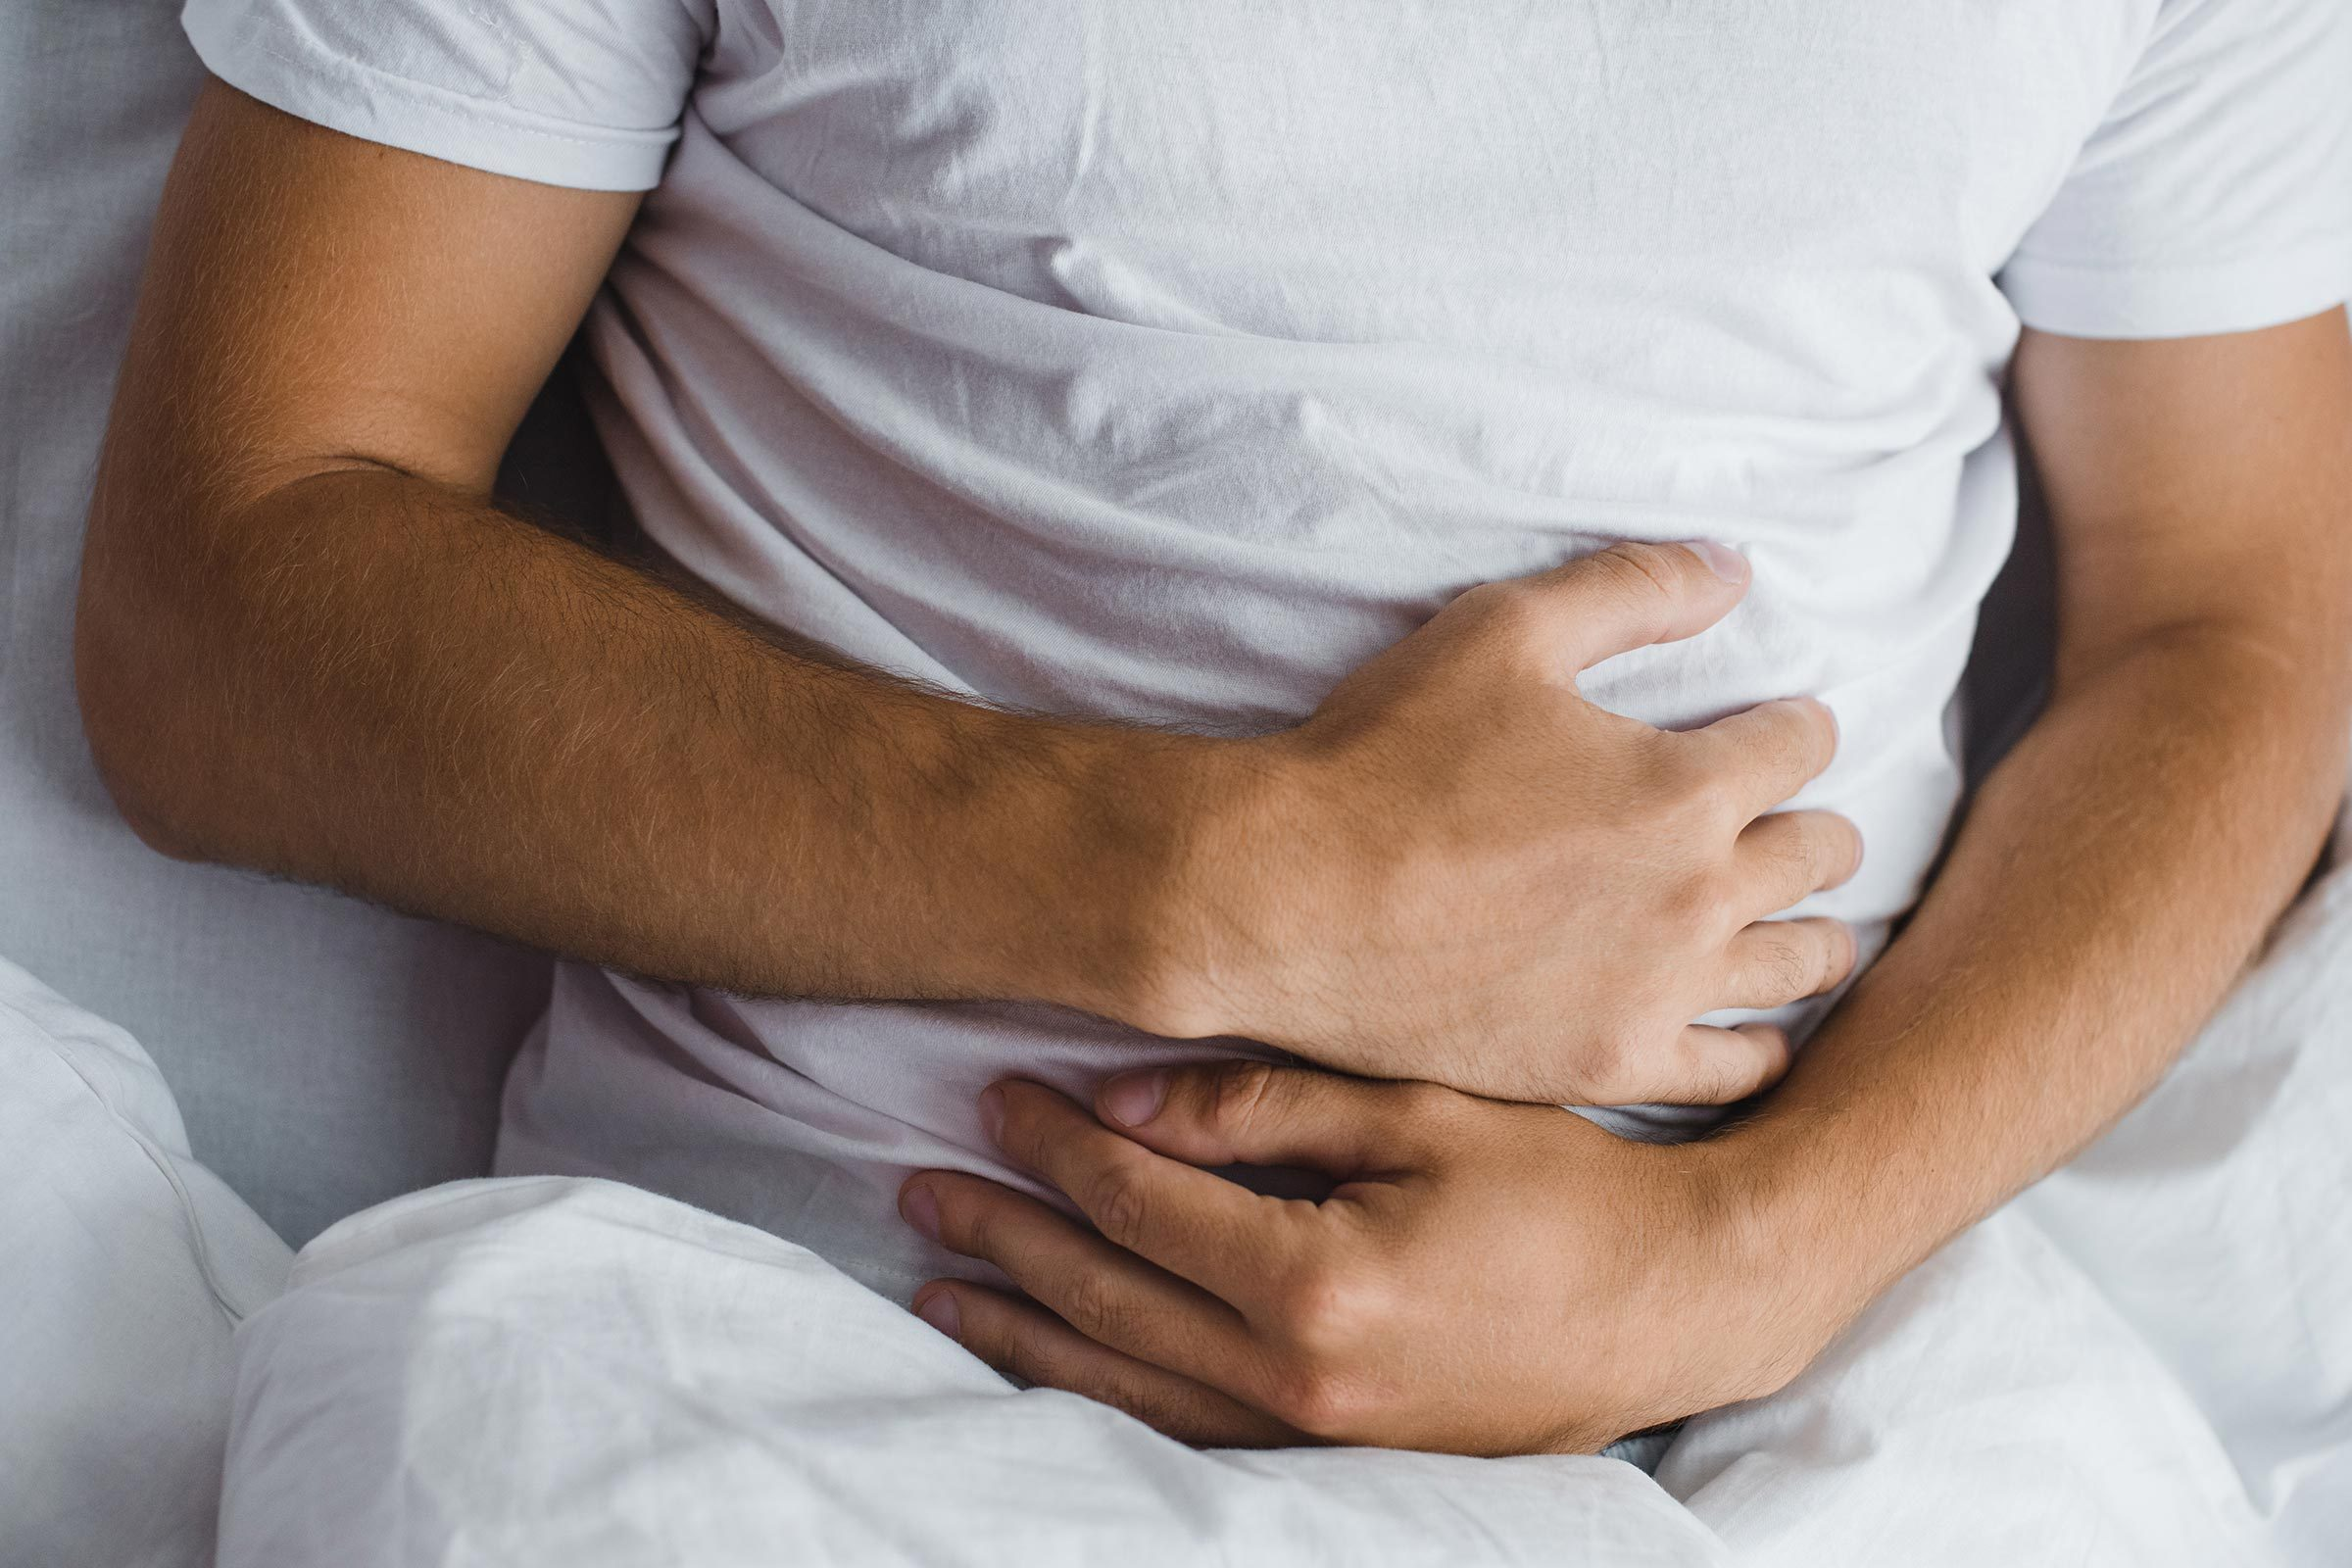 The Best Colonoscopy Prep Tips, According to Doctors | The